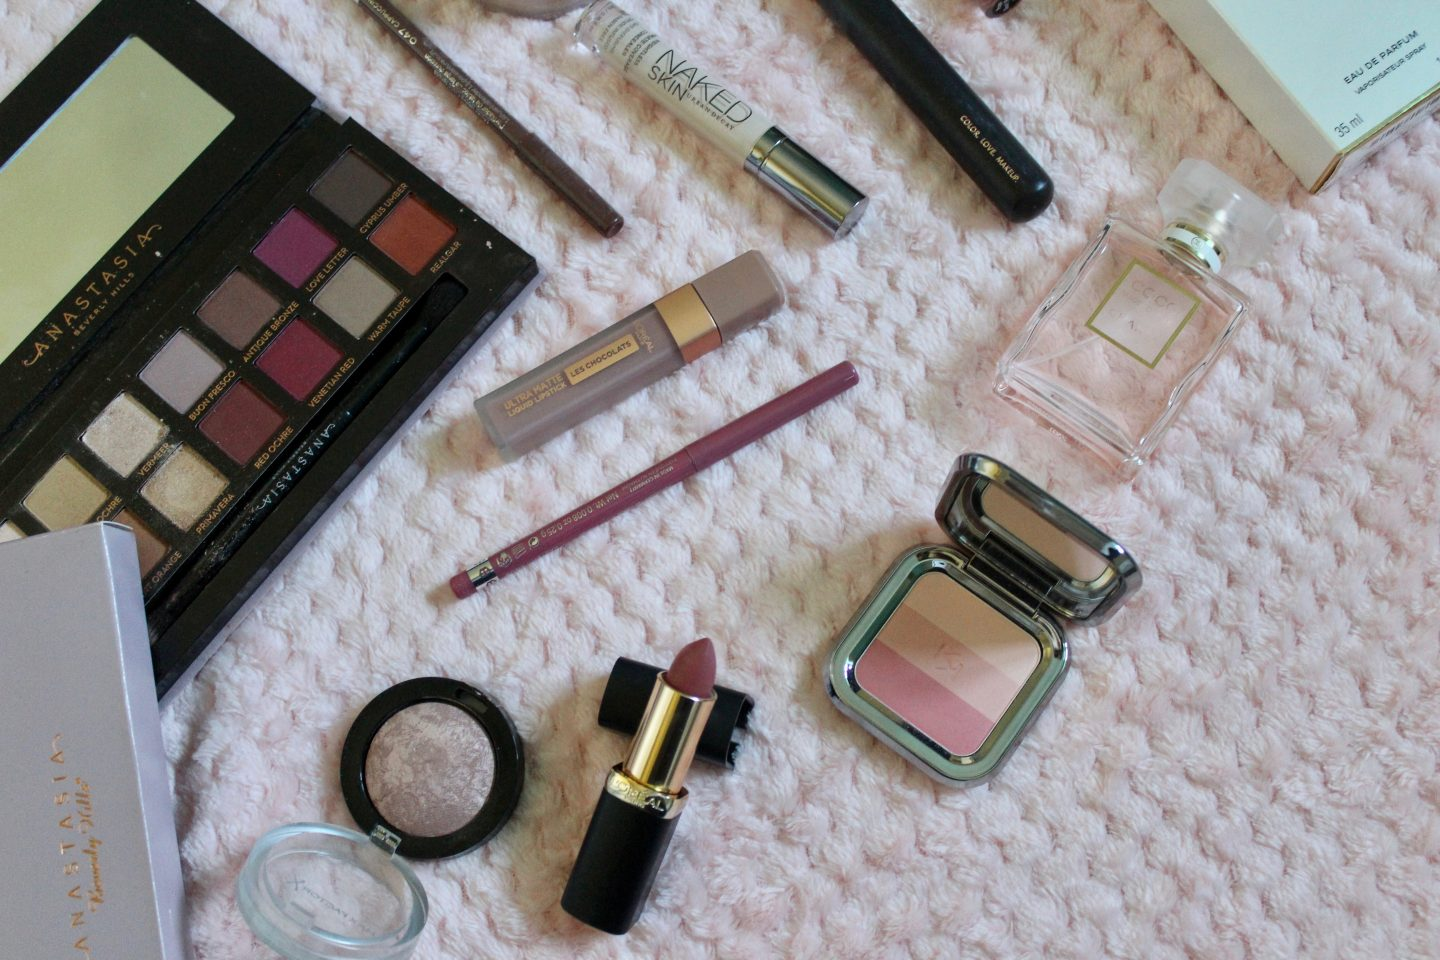 A photo of the anastasia beverly hills modern renaissance palette, a couple of l'oreal lipsticks, the chanel coco mademoiselle perfume and a few other beauty products